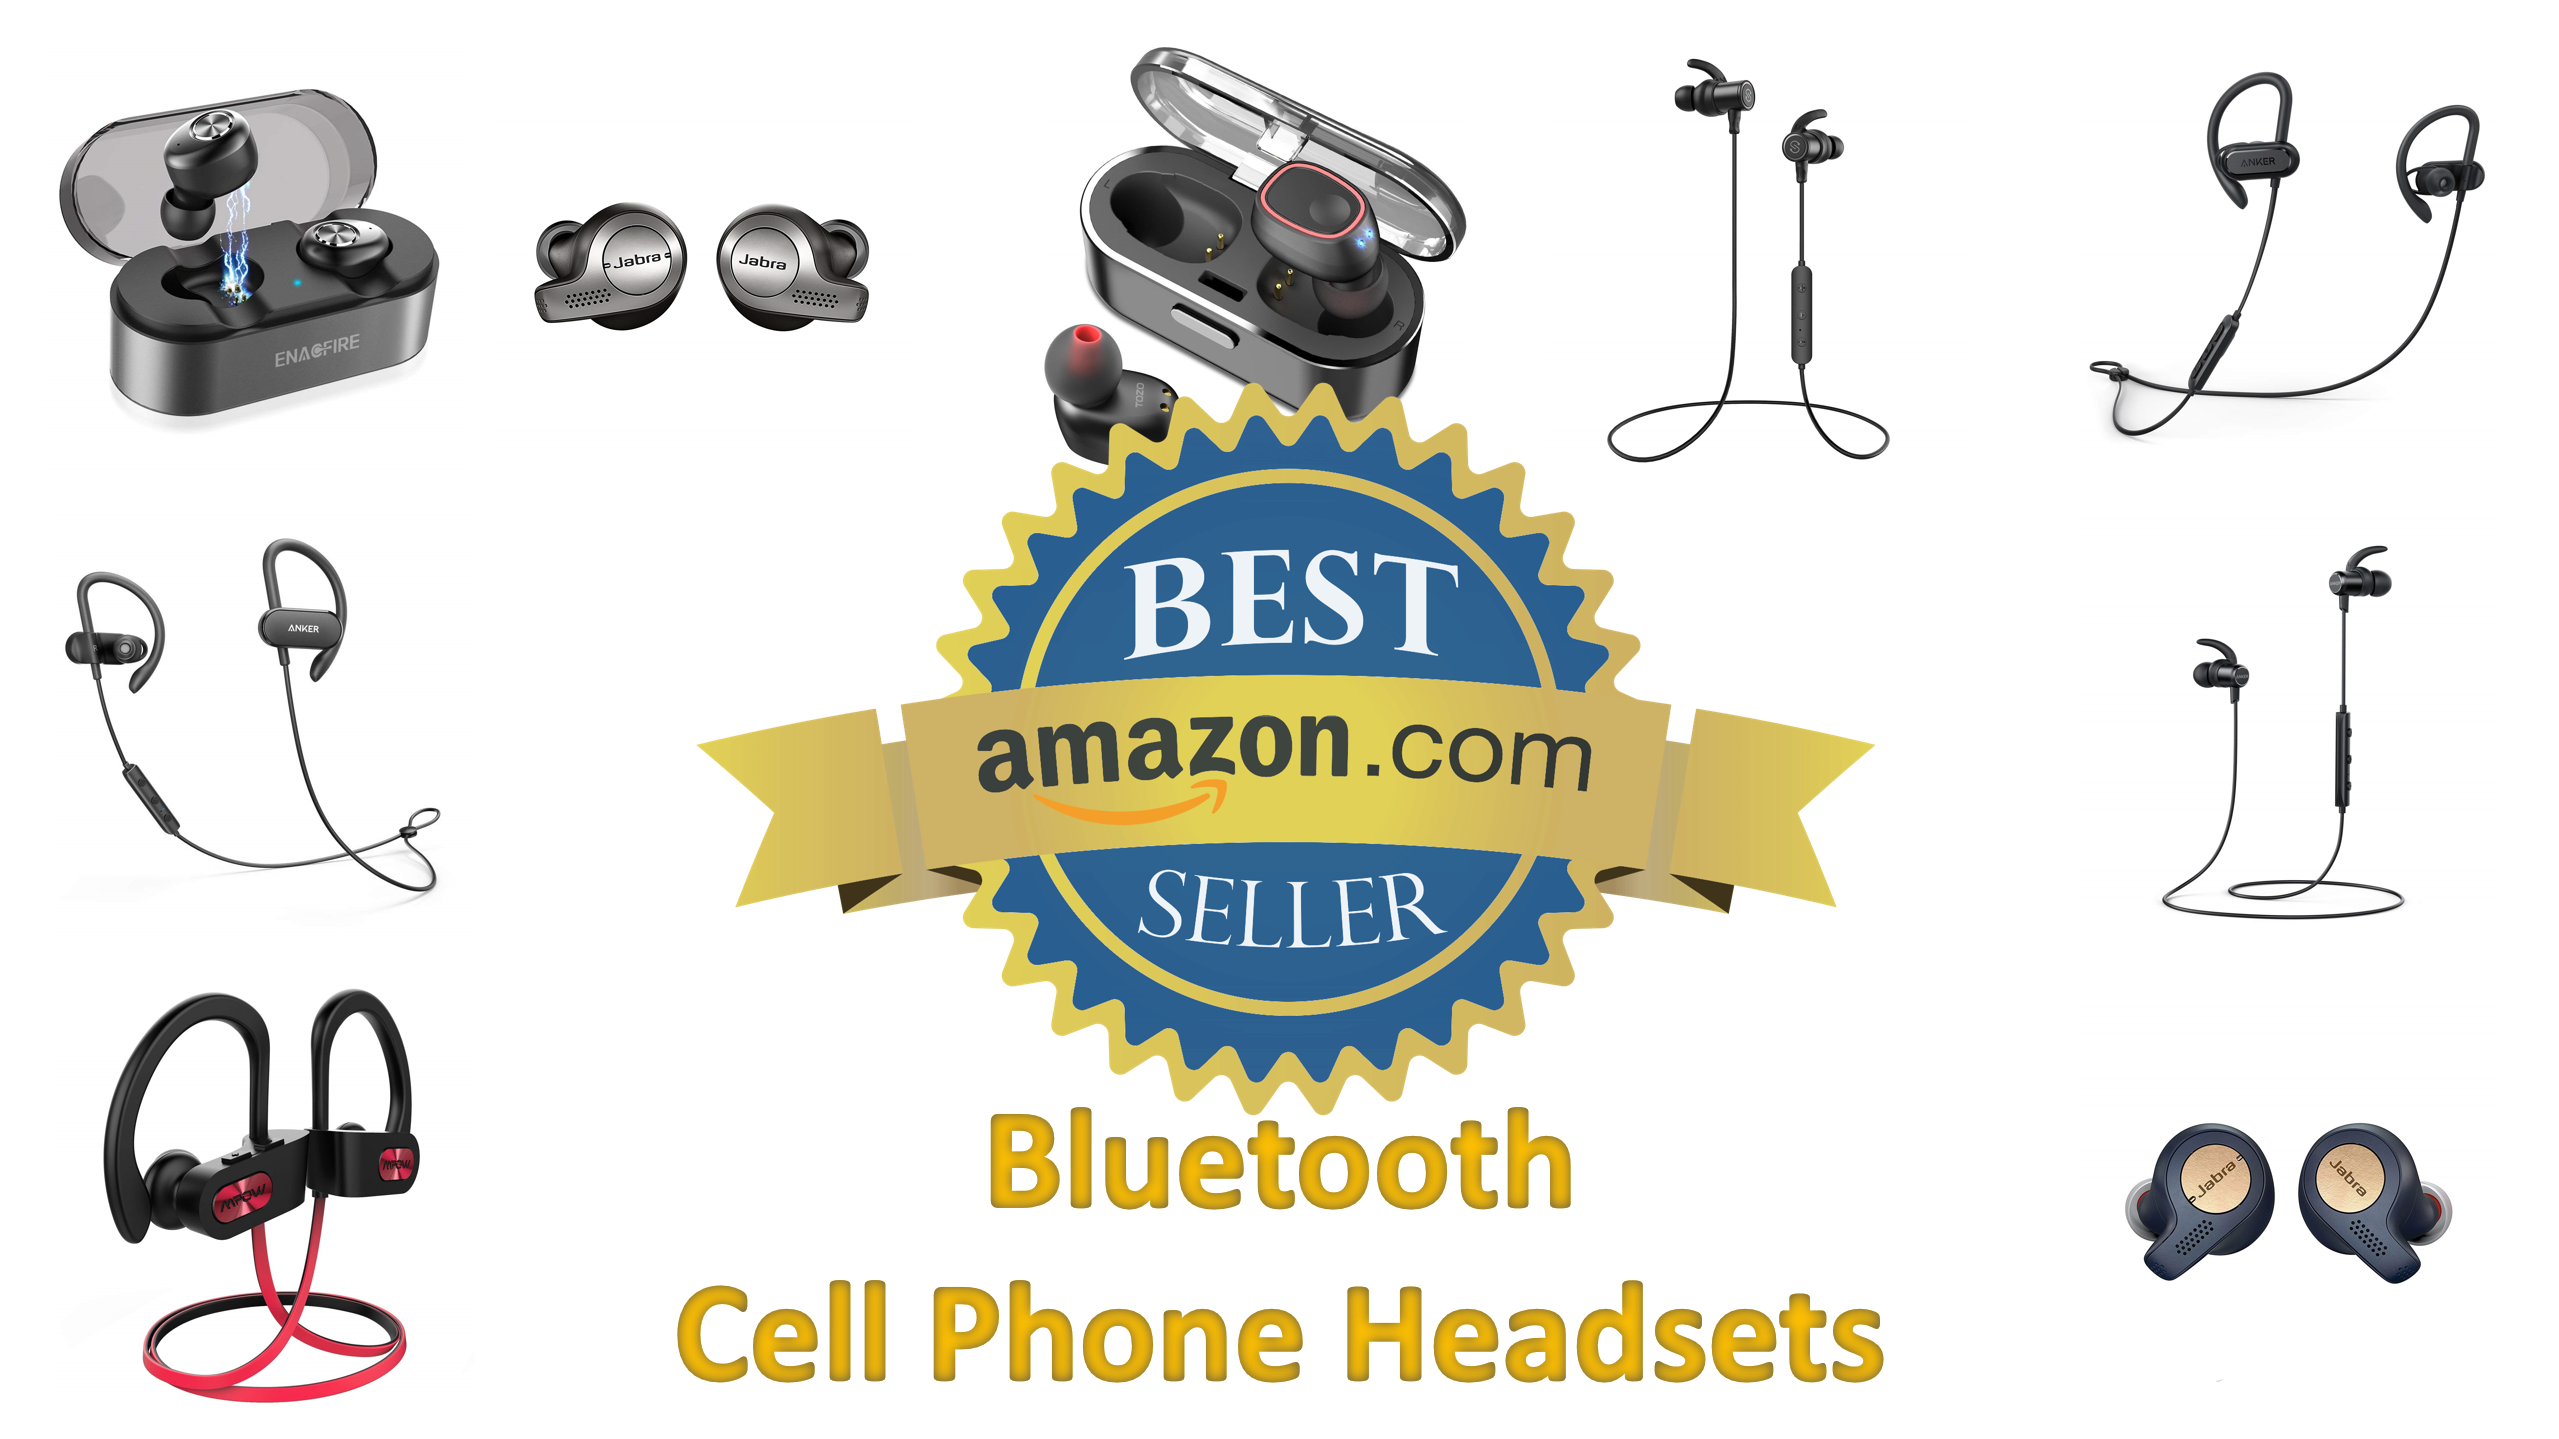 Best Sellers in Bluetooth Cell Phone Headsets